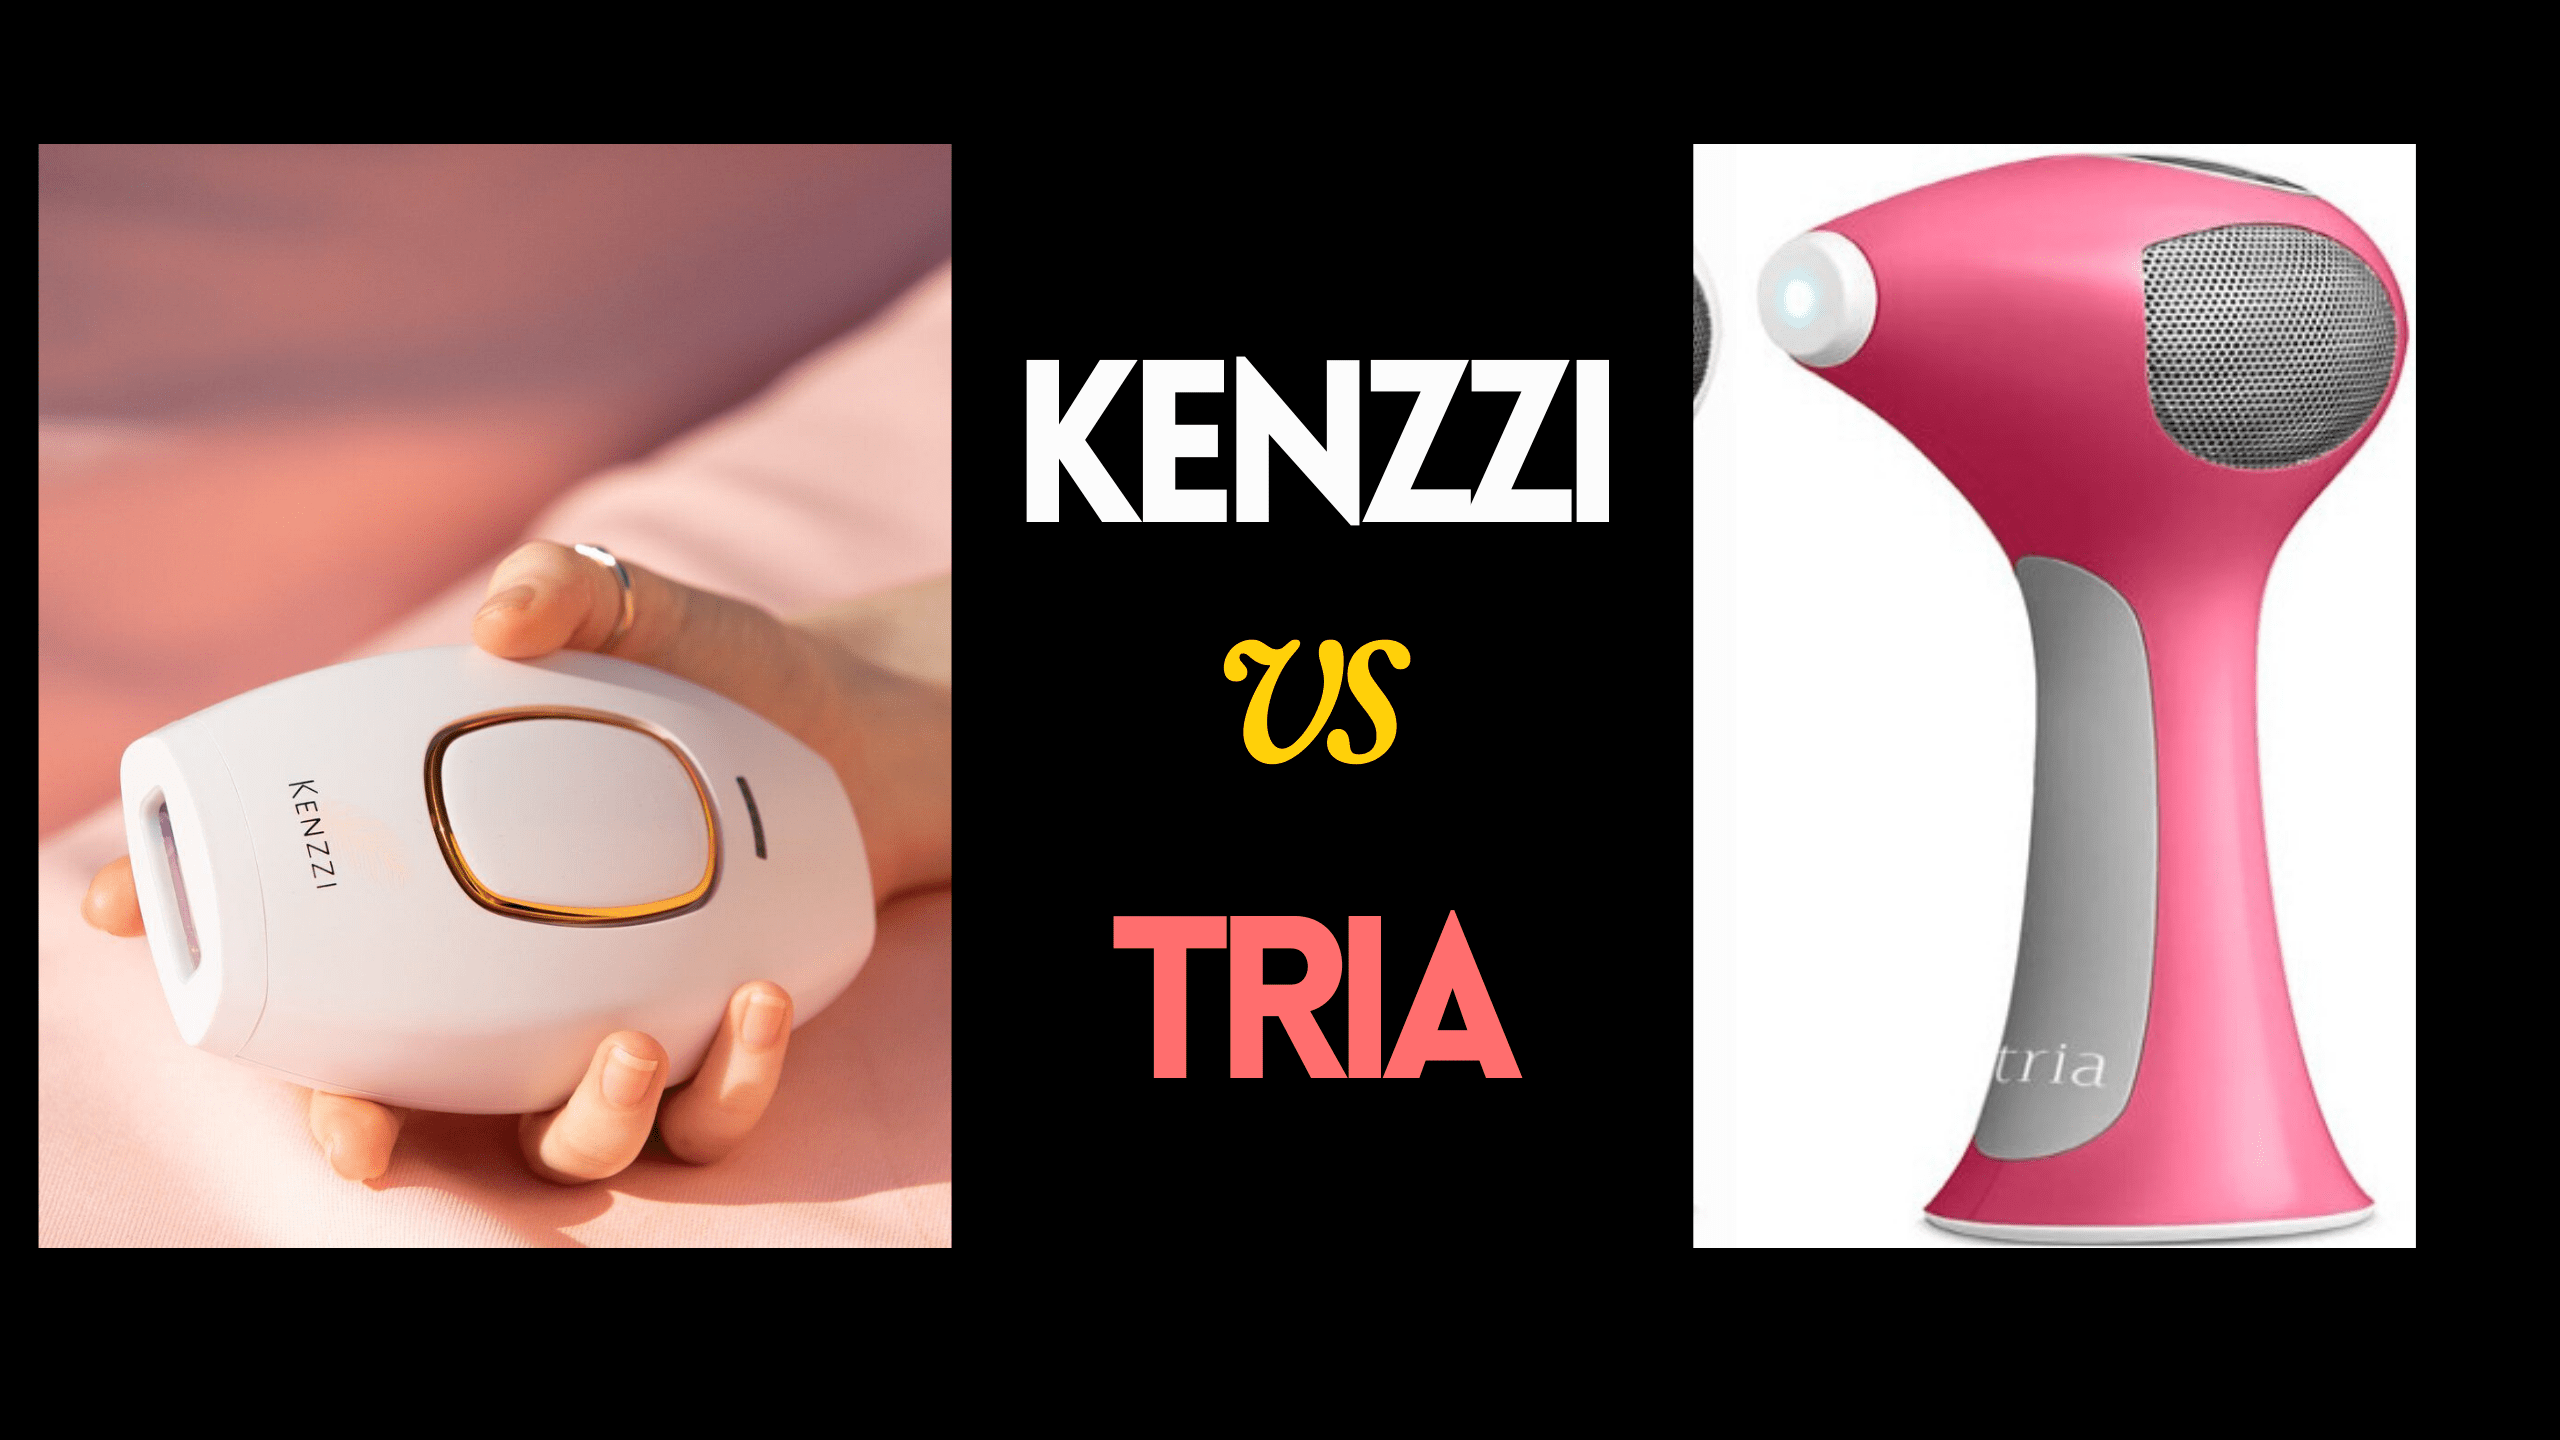 Kezzi Reviews vs tria beauty 4x reviews